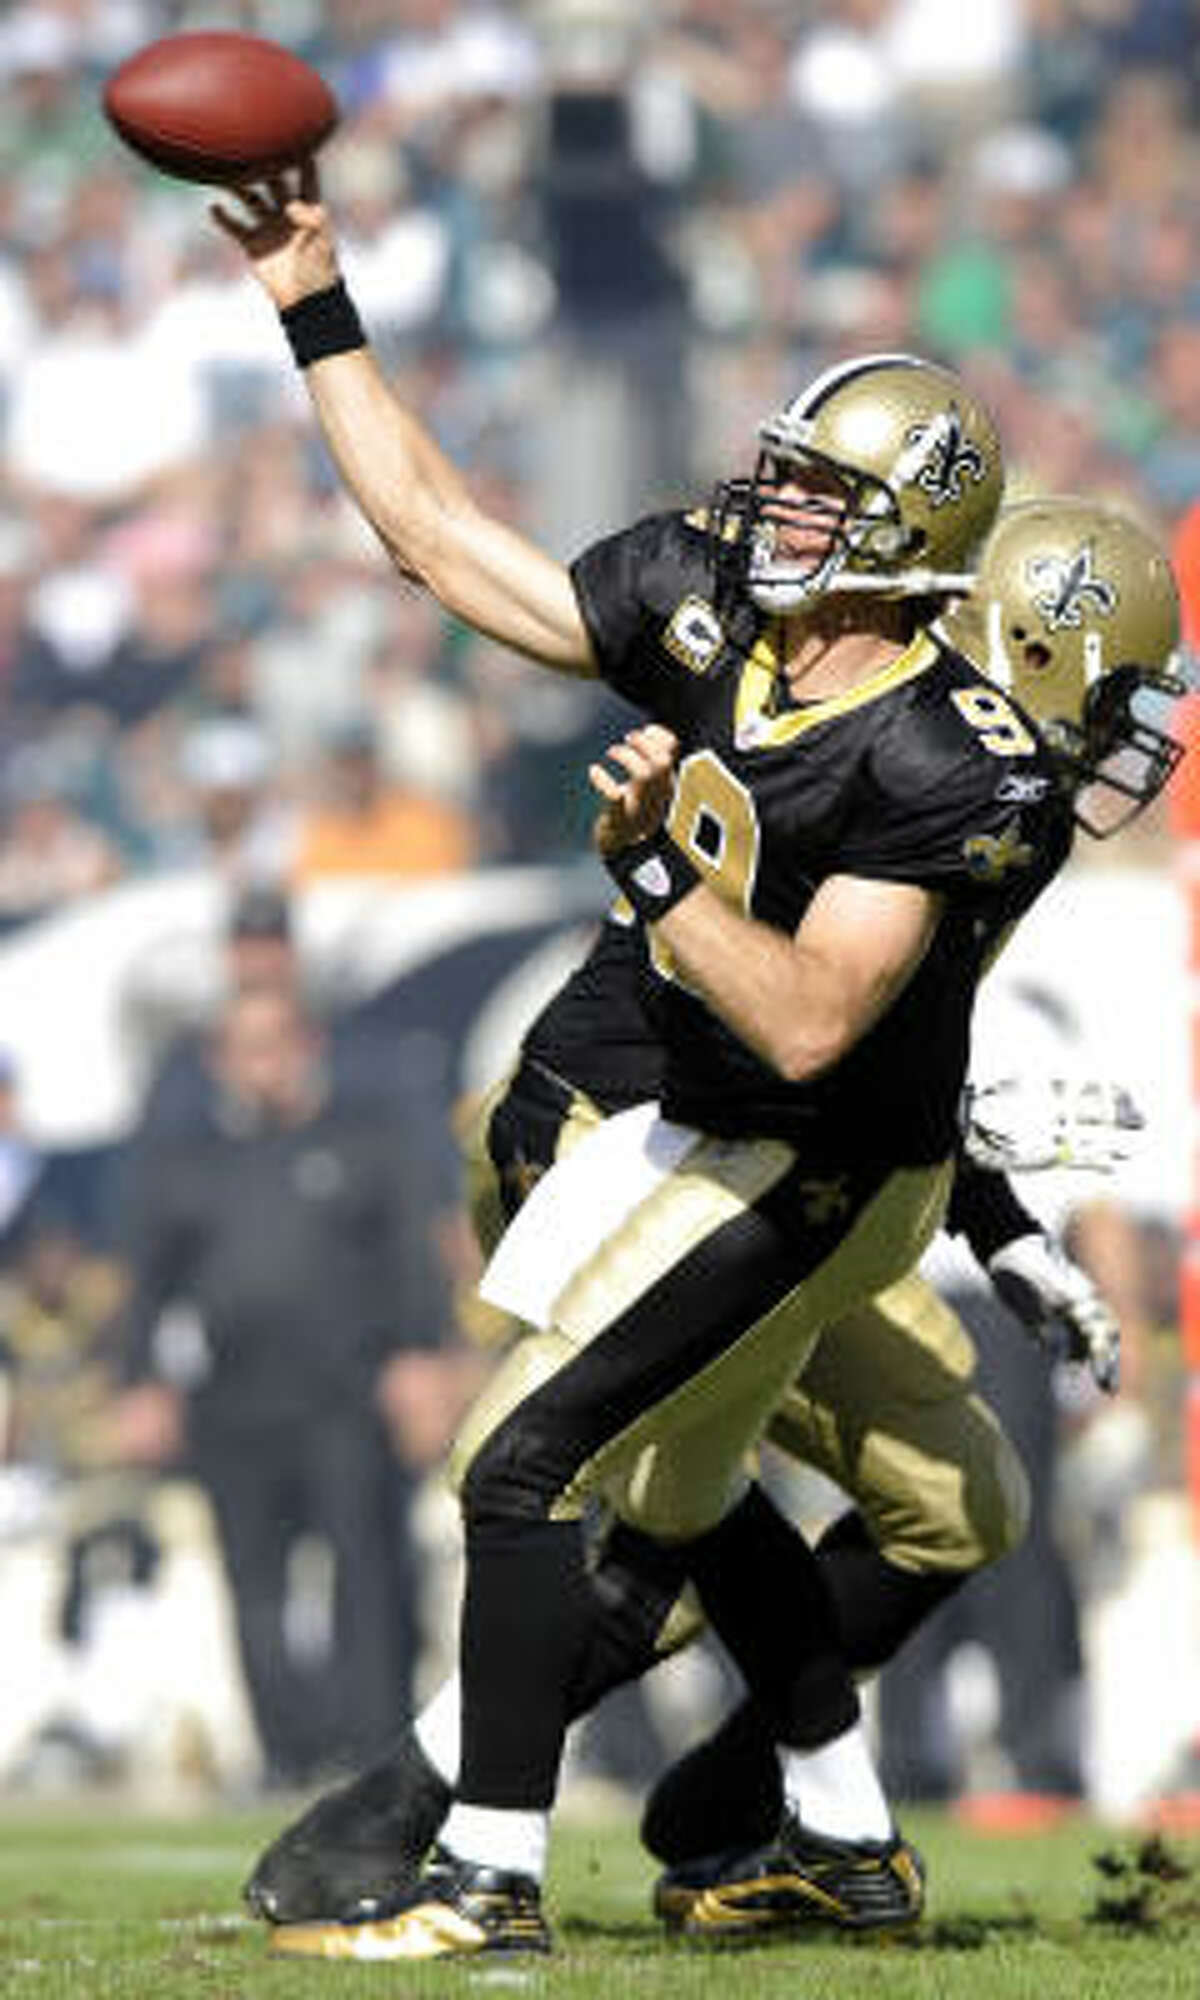 Sept. 20: Saints 48, Eagles 22 Record: 2-0 Drew Brees tossed three more touchdown passes, and the Saints rolled past an Eagles team missing Donovan McNabb because of a cracked rib. Making his first NFL start, Kevin Kolb threw for 391 yards and two touchdowns, including a 71-yard scoring pass to DeSean Jackson. Kolb also threw three interceptions, though, including one returned 97 yards for a TD by Darren Sharper in the final minute. Brees, who had six TD passes last week, picked up where he left off, completing 25 of 34 passes for 311 yards and one interception.